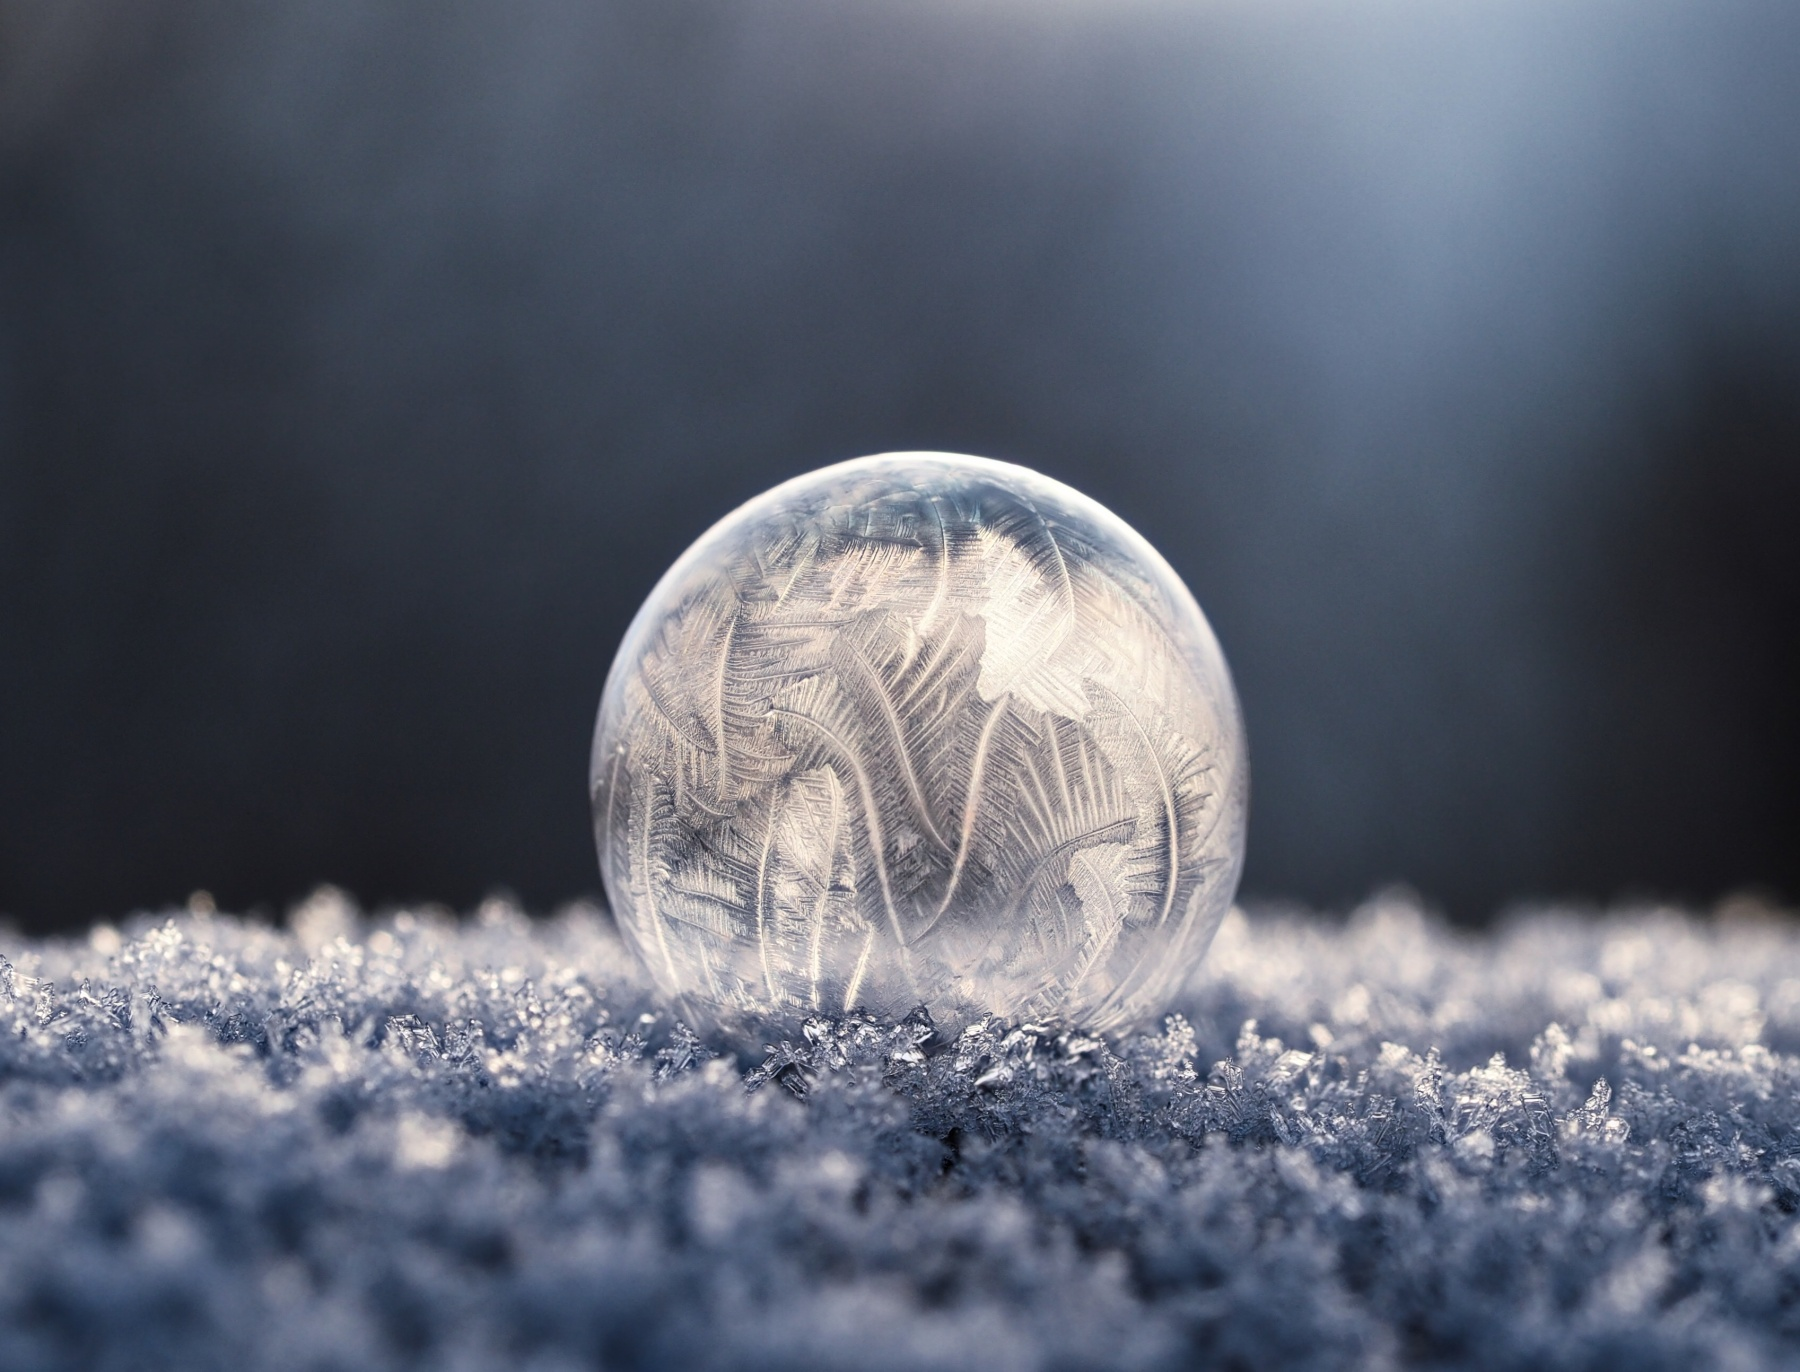 ice, Frost, winter, mystery